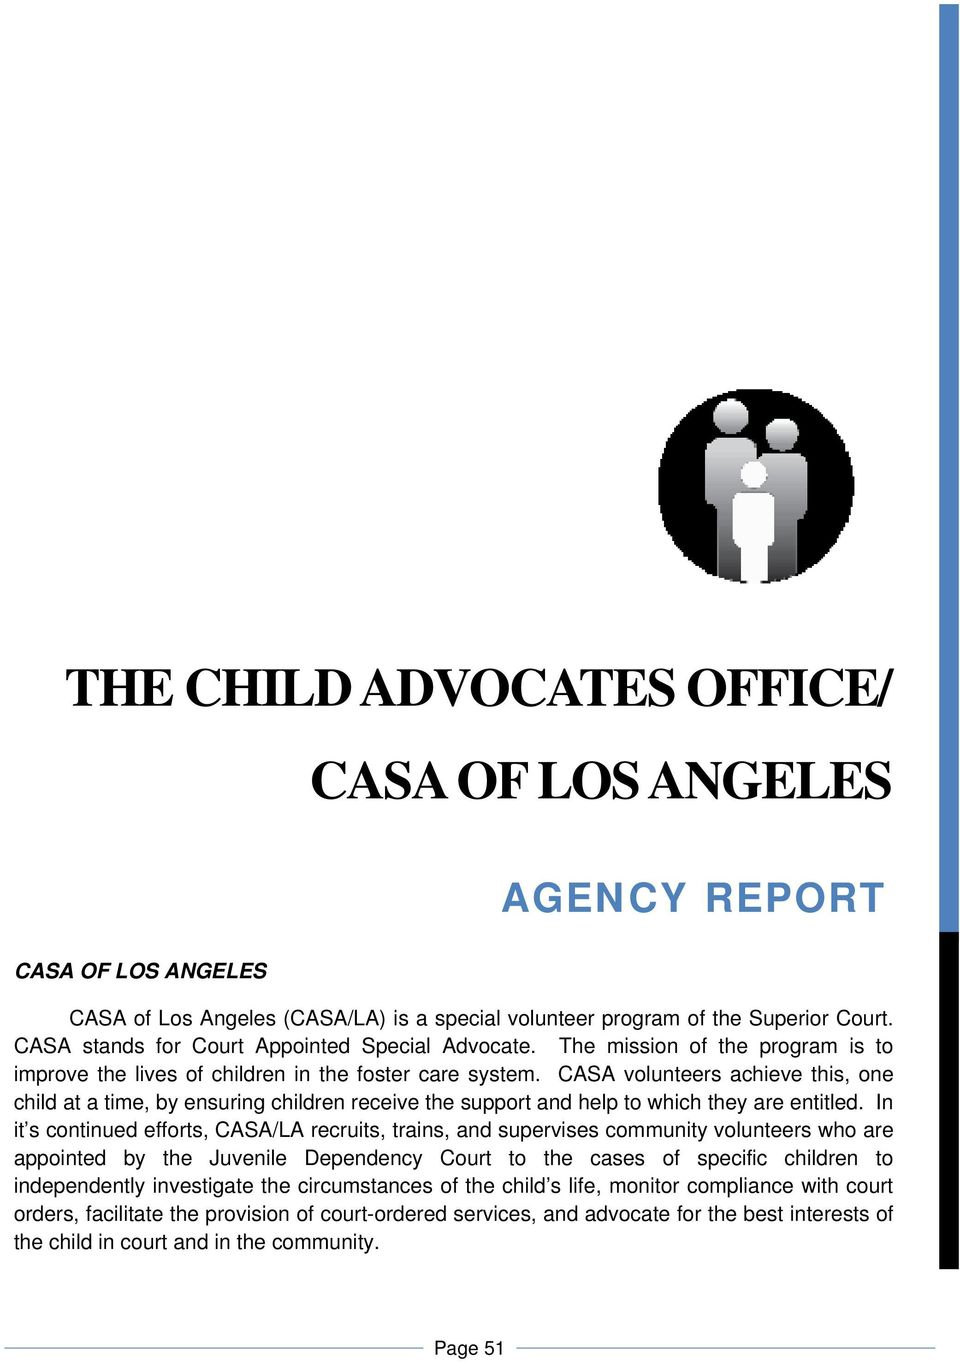 CASA volunteers achieve this, one child at a time, by ensuring children receive the support and help to which they are entitled.